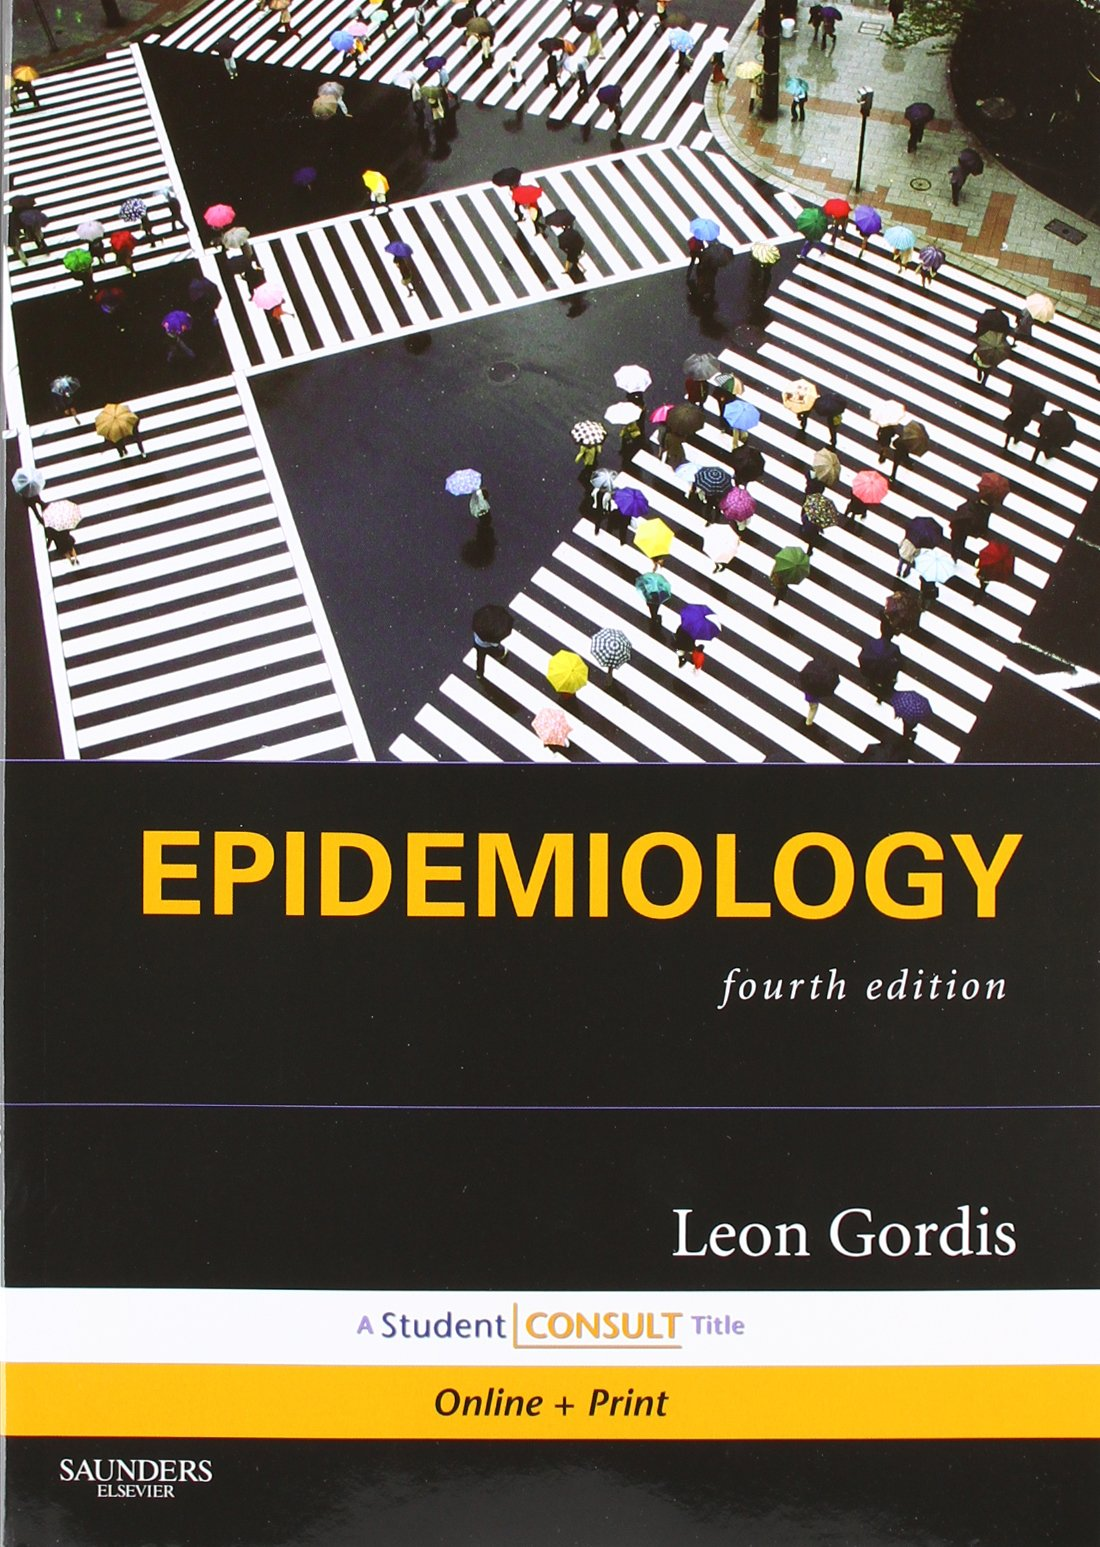 Download Epidemiology, 4th Edition 